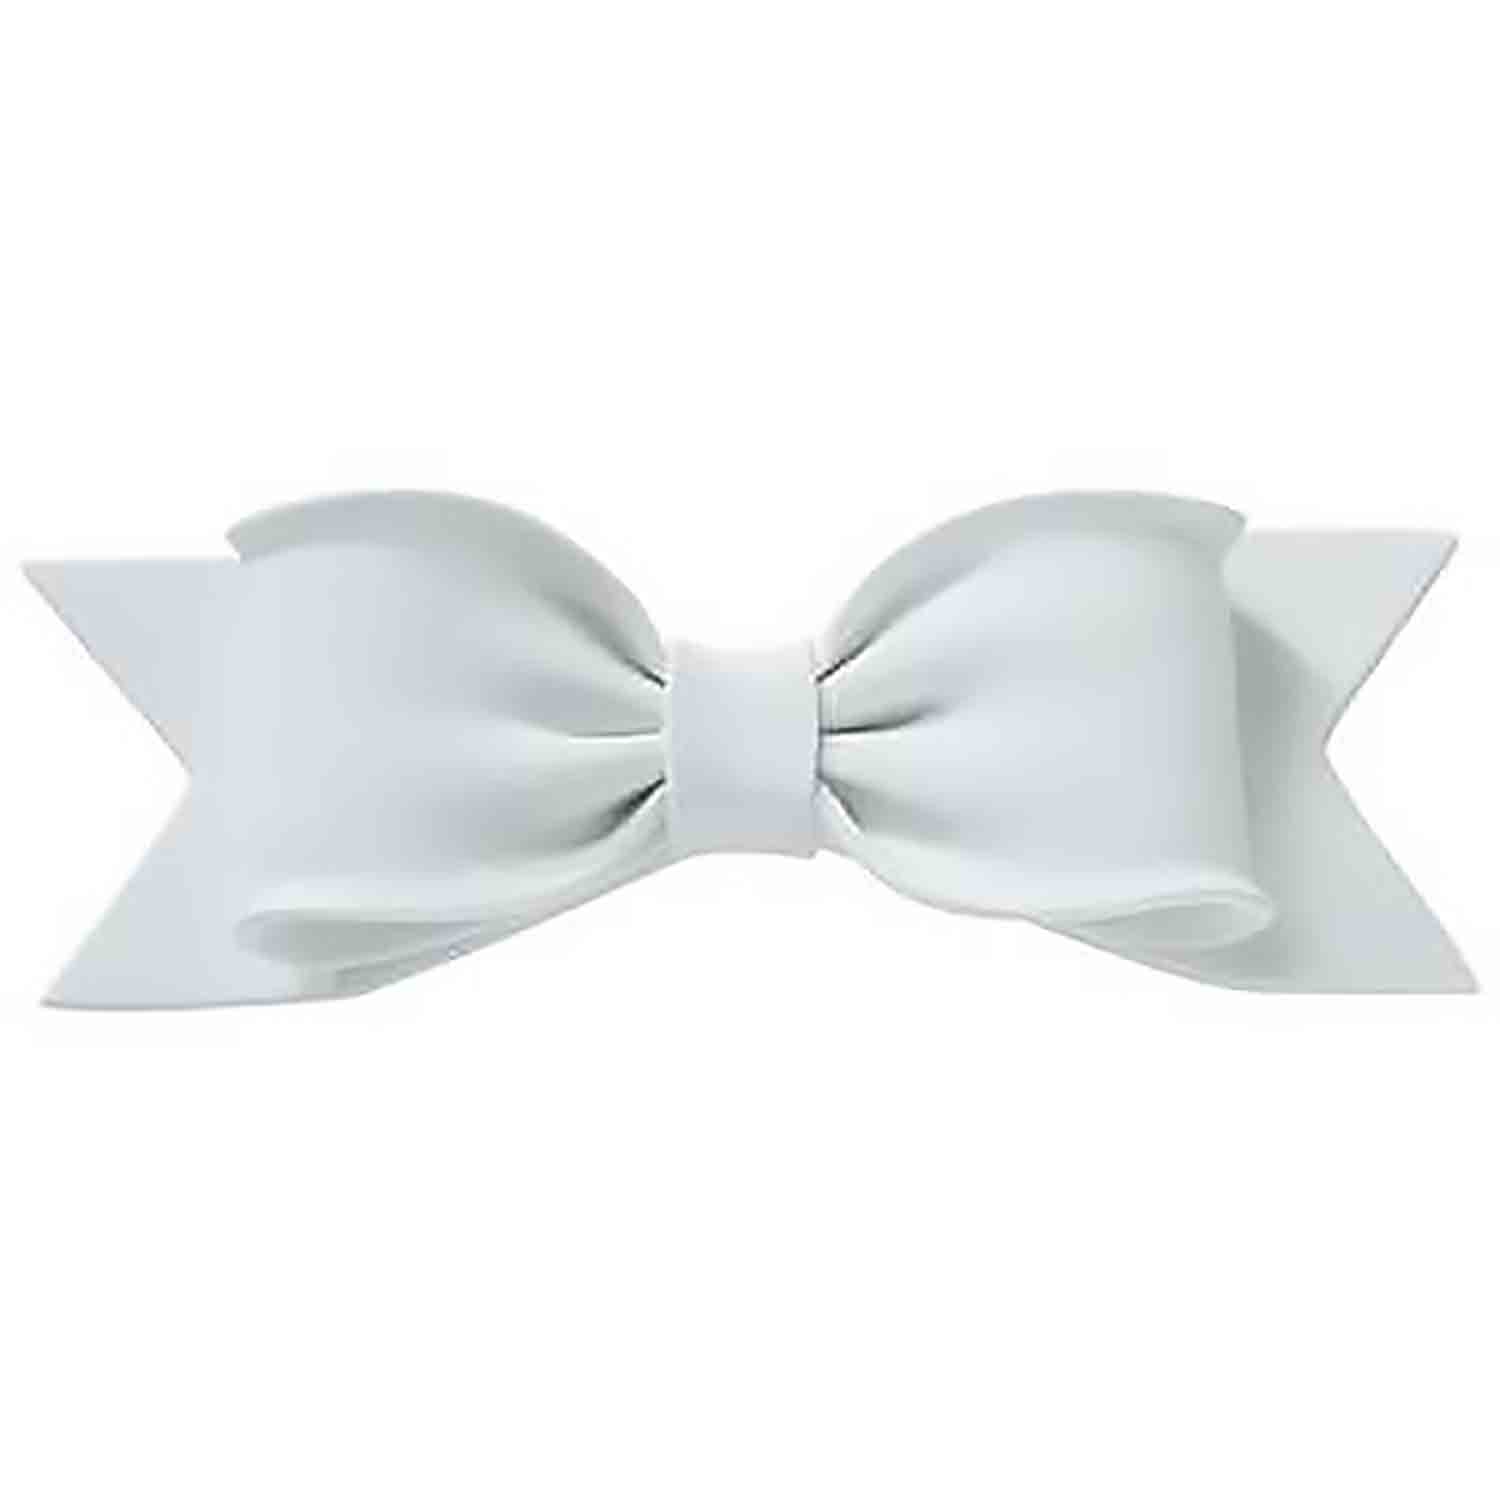 Large White Gum Paste Bow